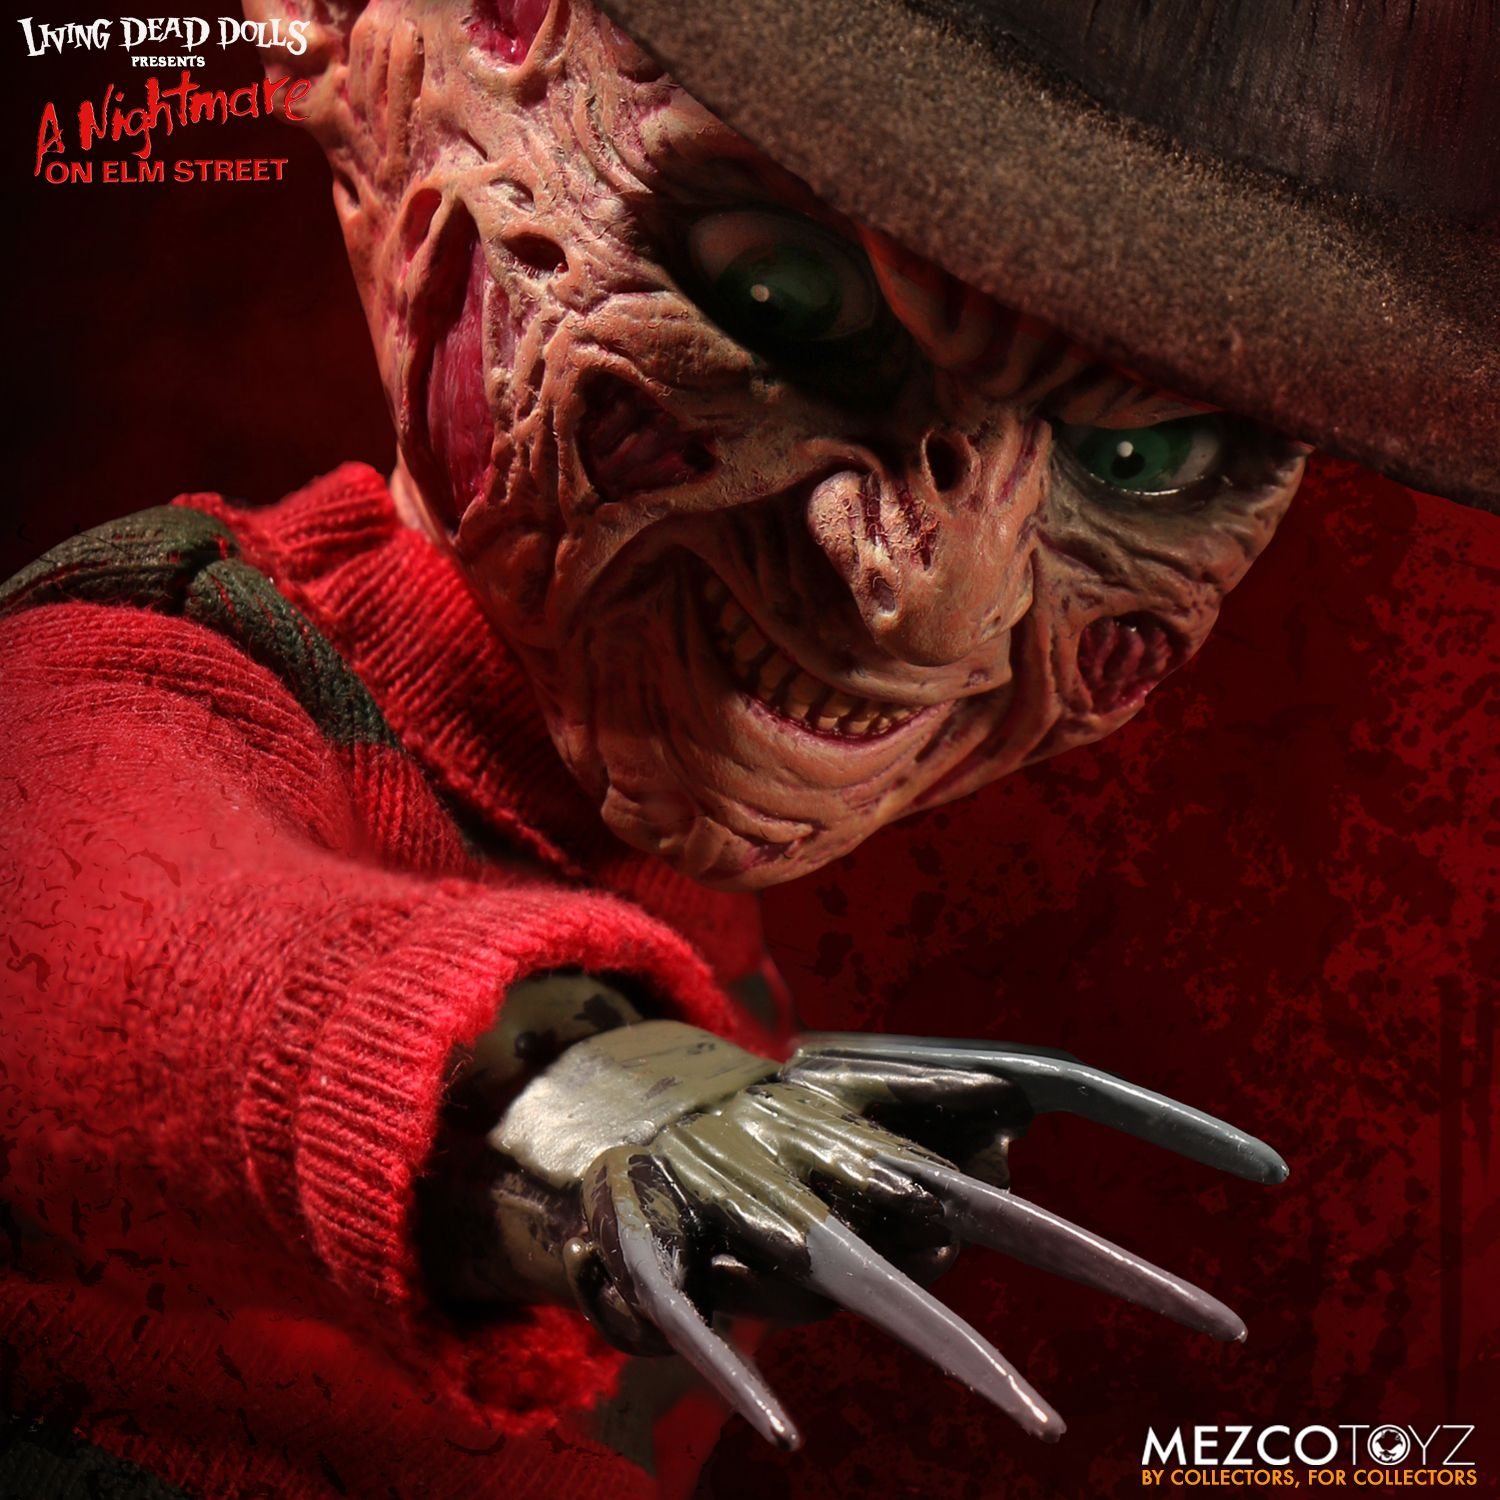 Living dead dolls a nightmare on elm street talking - Pictures of freddy cougar ...